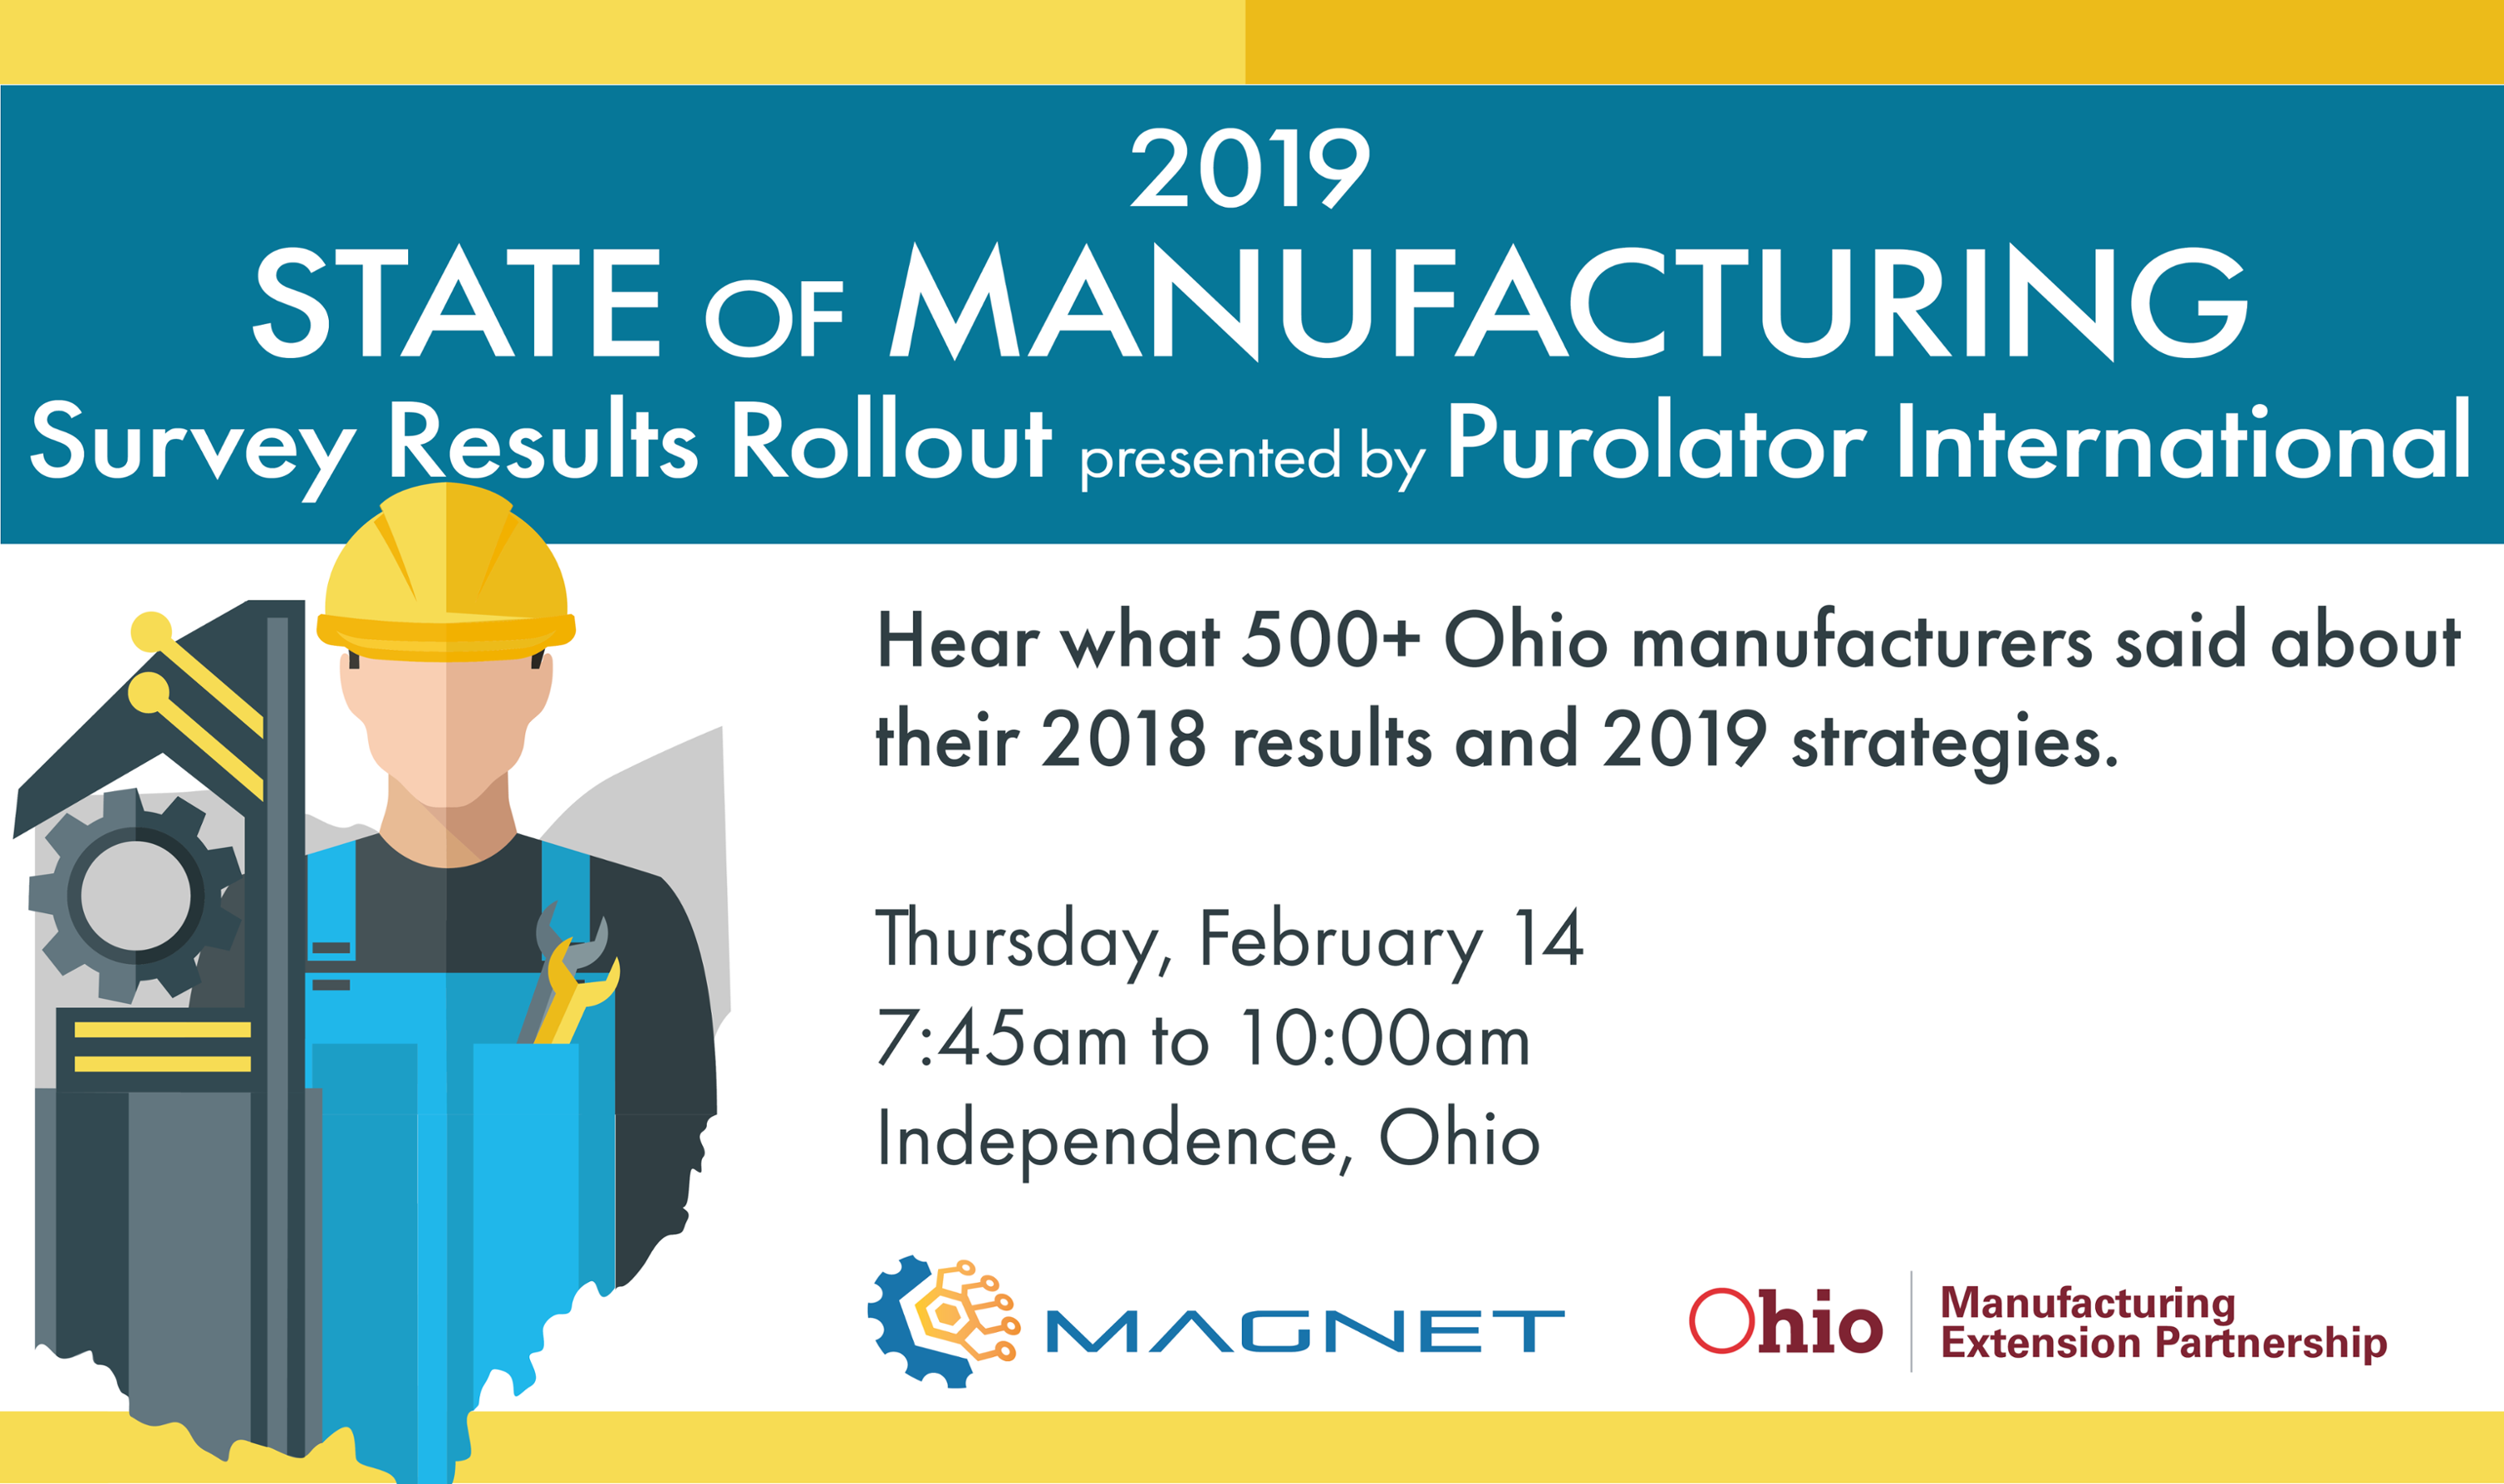 State of Manufacturing Survey Results Rollout Feb 14